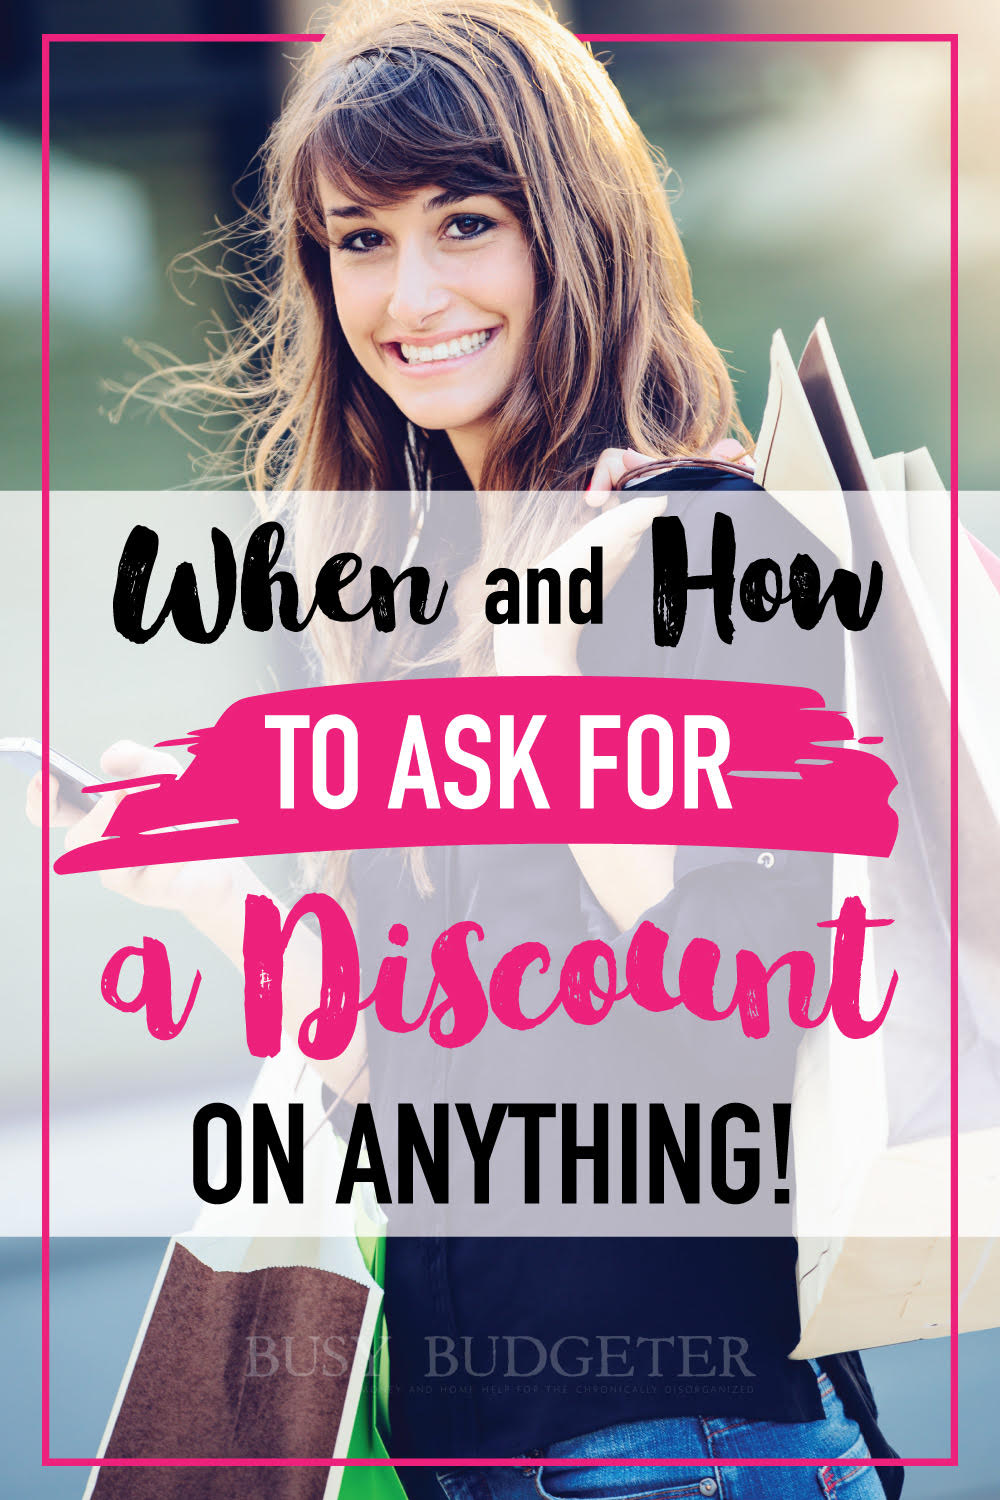 When and how to ask for a discount. This is awesome! It's so hard to know when you should ask for a discount, this is really helpful!